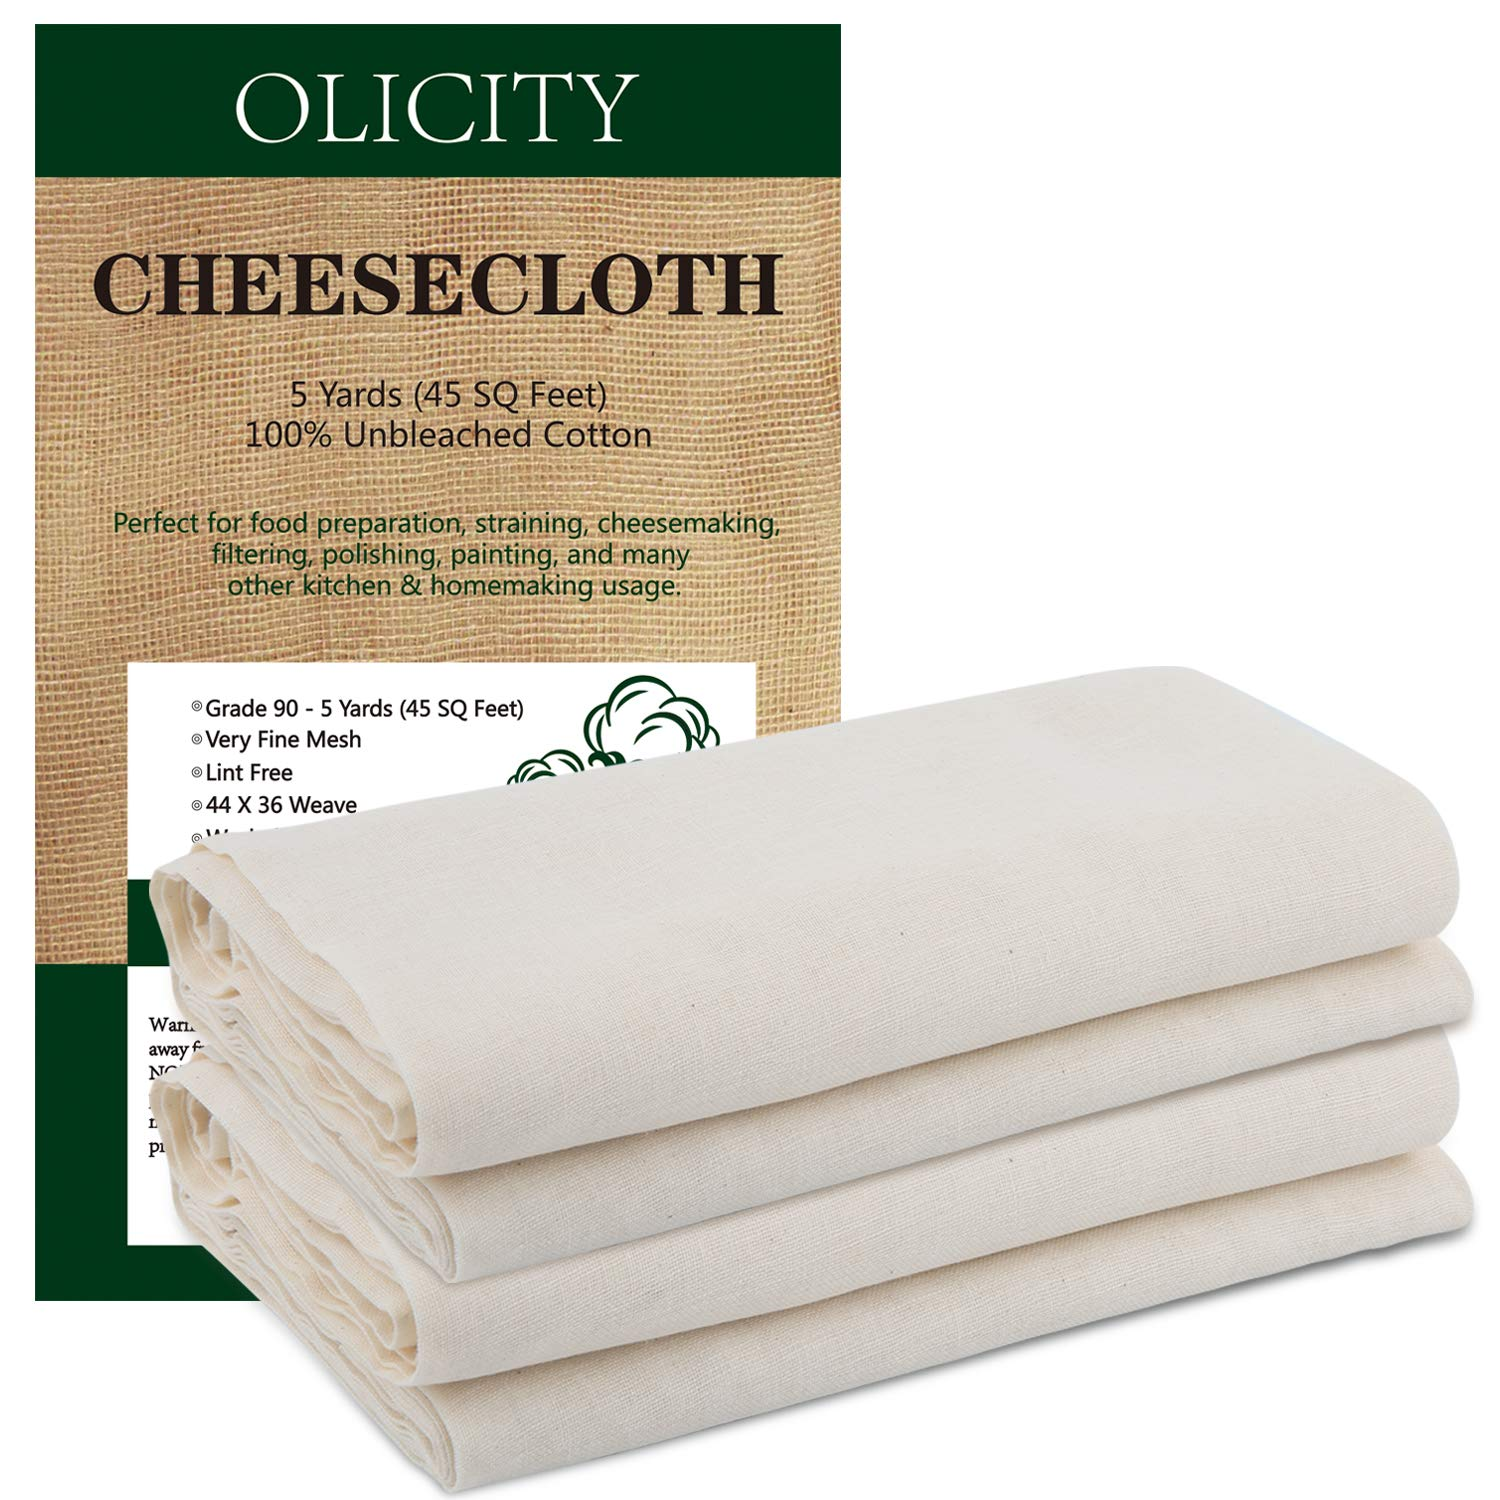 Olicity Cheesecloth, Grade 90, 45 Square Feet, 100% Unbleached Cotton Fabric Ultra Fine Muslin Cloths for Butter, Cooking, Strainer, Baking, Halloween Decorations - 5 Yards